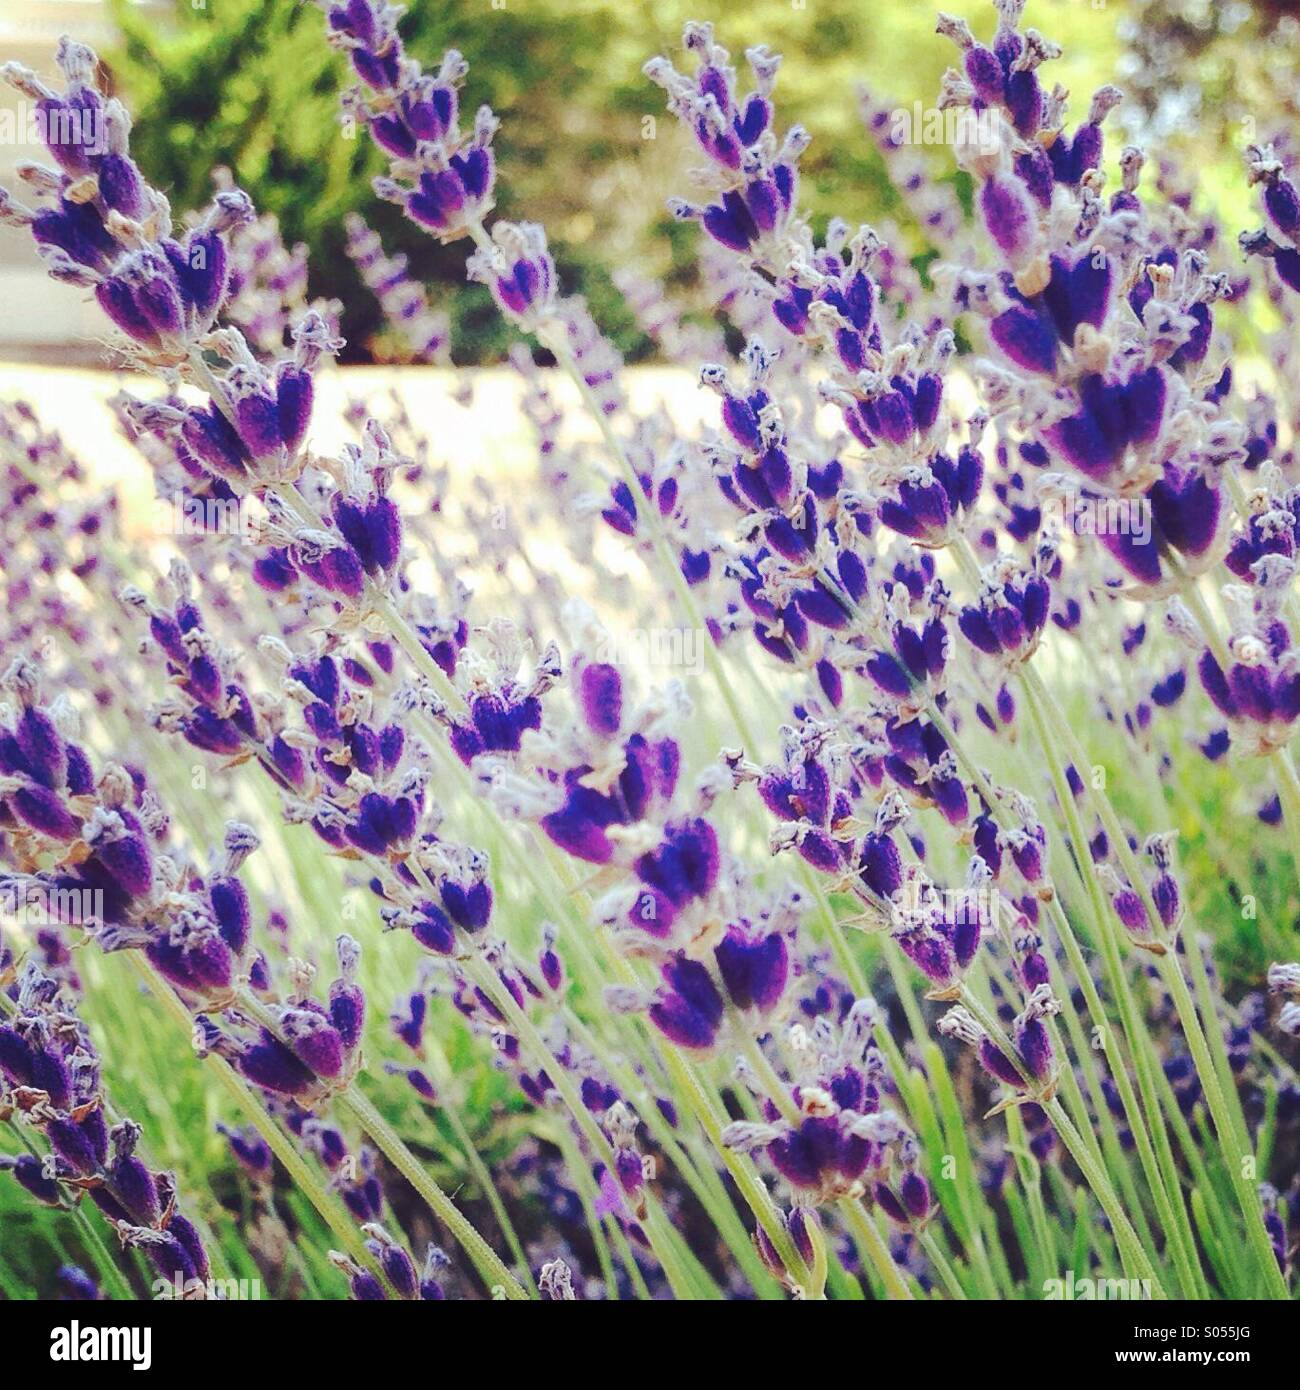 Lavender Blowing in the Breeze! - Stock Image